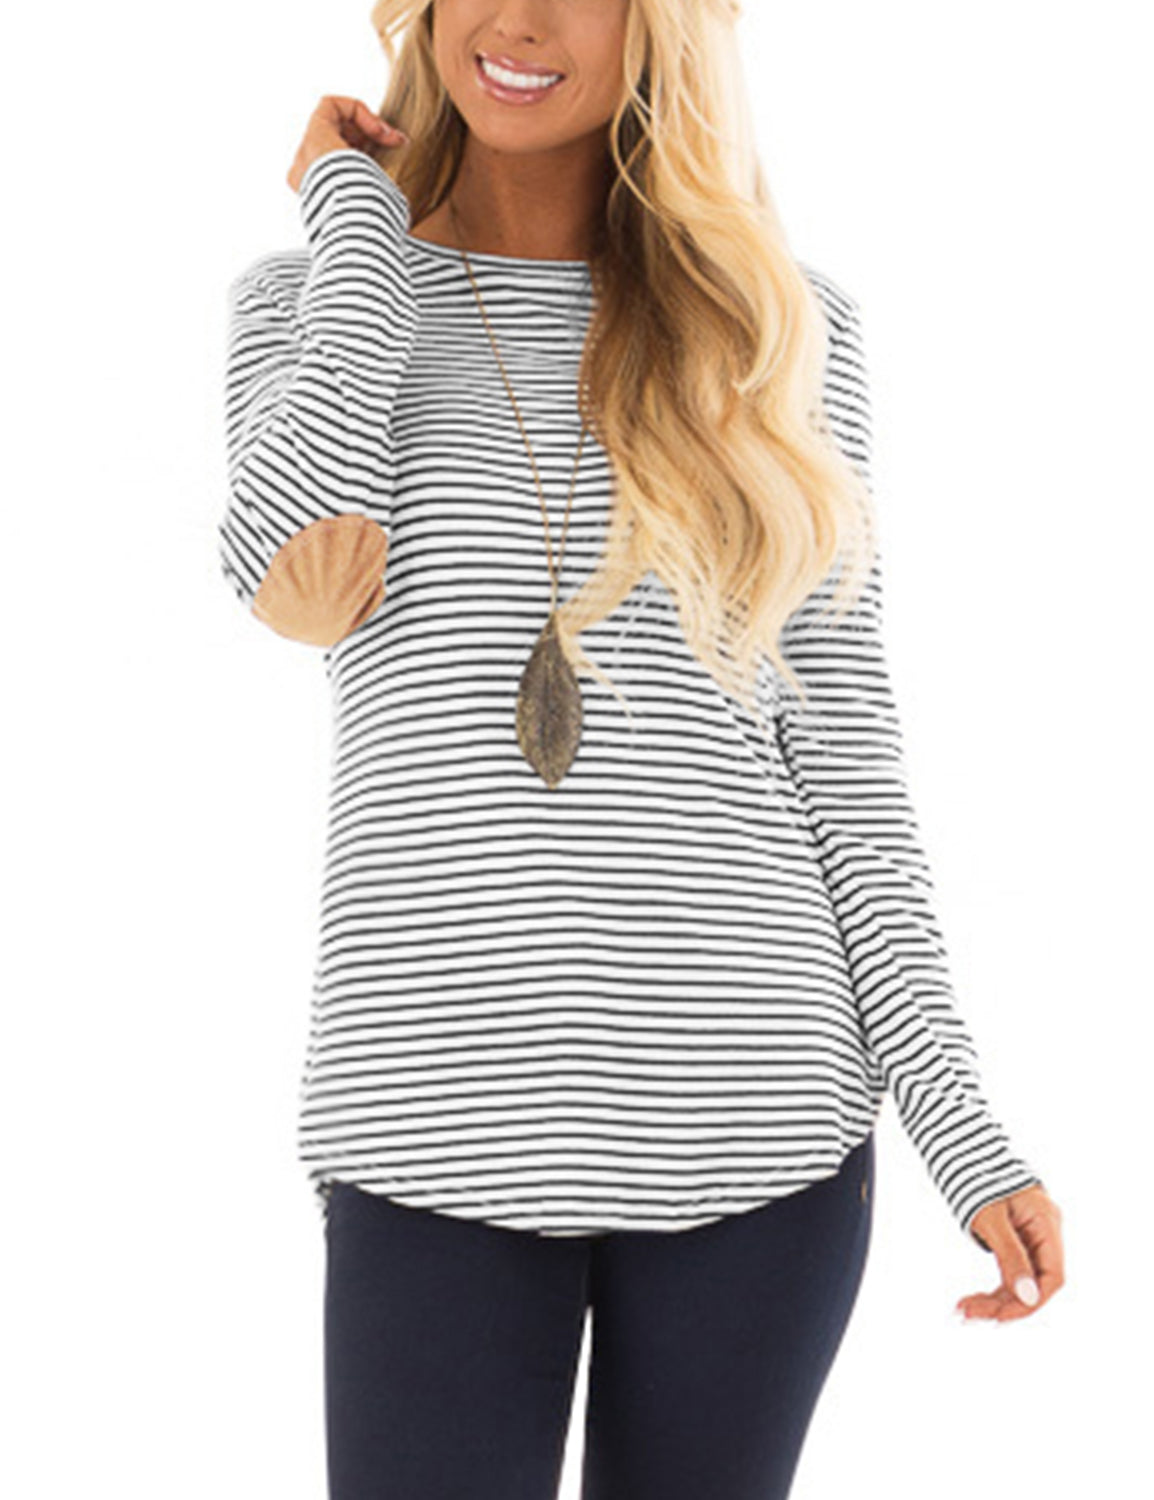 Casual Striped Elbow Patch Tunic Top